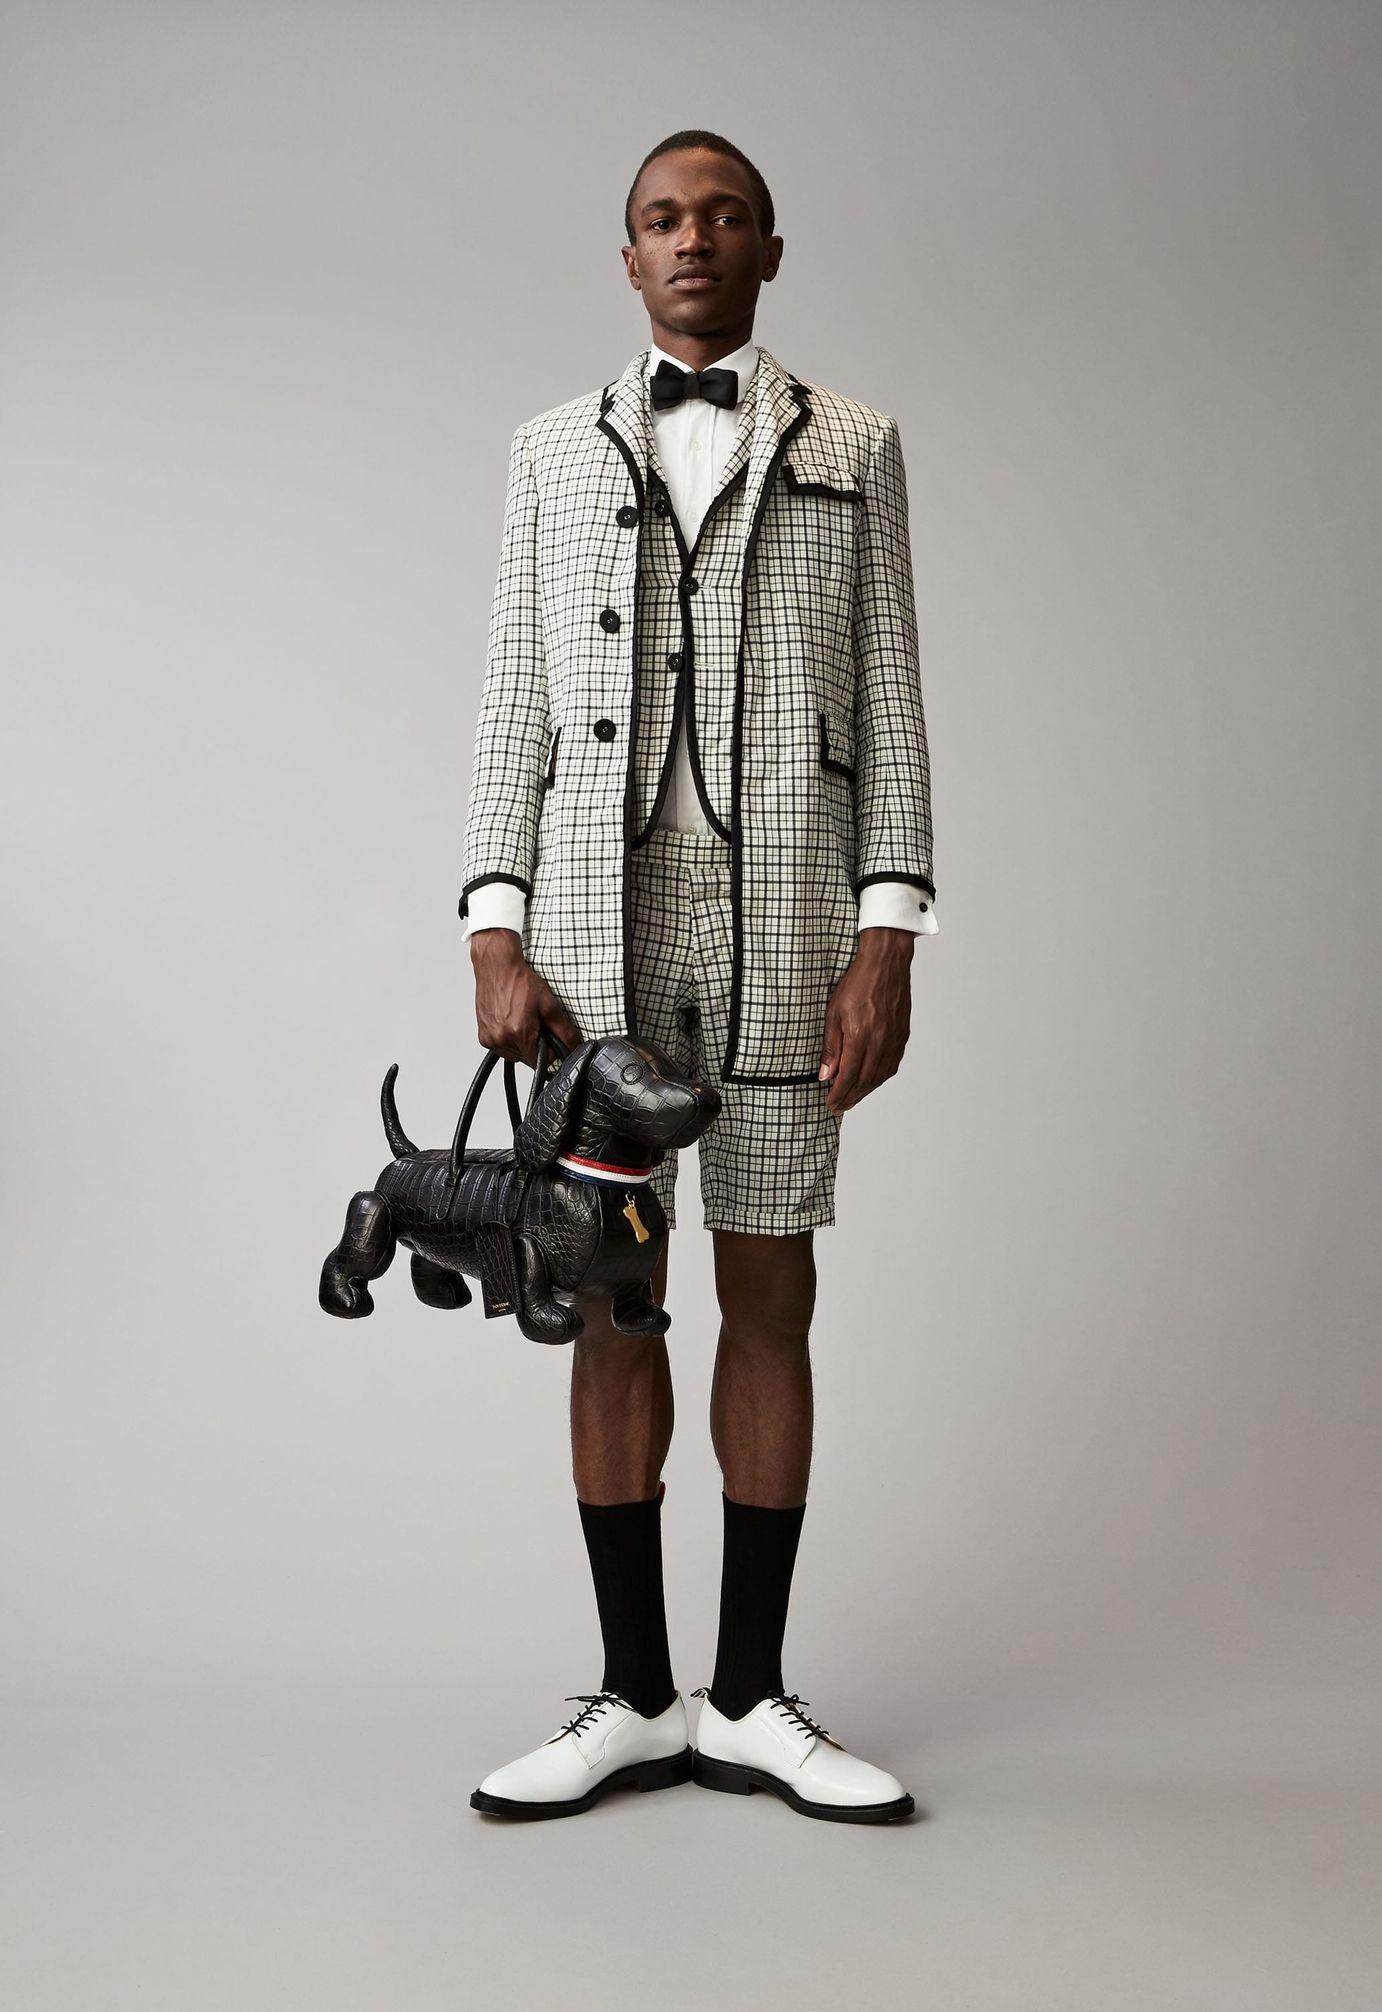 76b5f01cdd6 Thom Browne: Cruise 2018 | Men's exquisite fashion | Pinterest ...